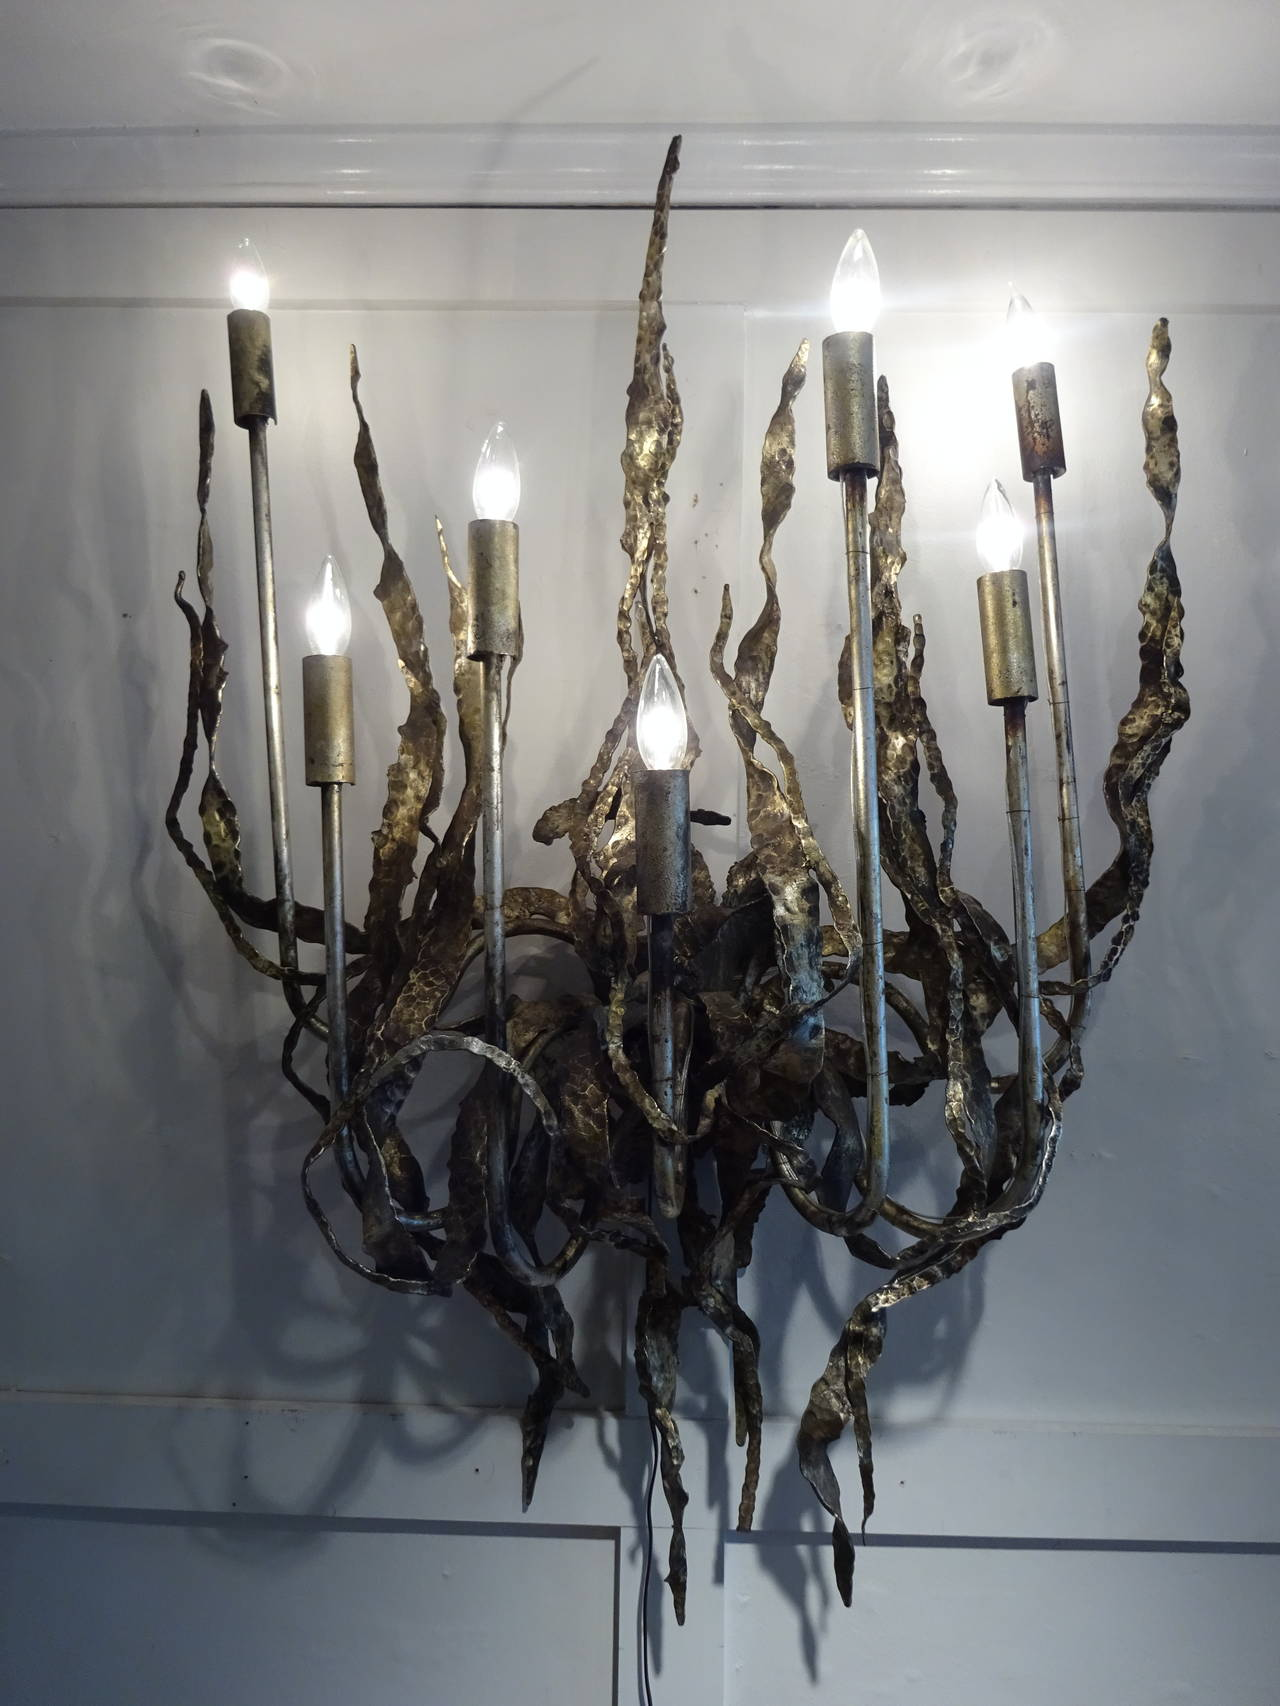 Skyrim Wall Sconces Not Working : Massive Brutalist Wall Sconce For Sale at 1stdibs